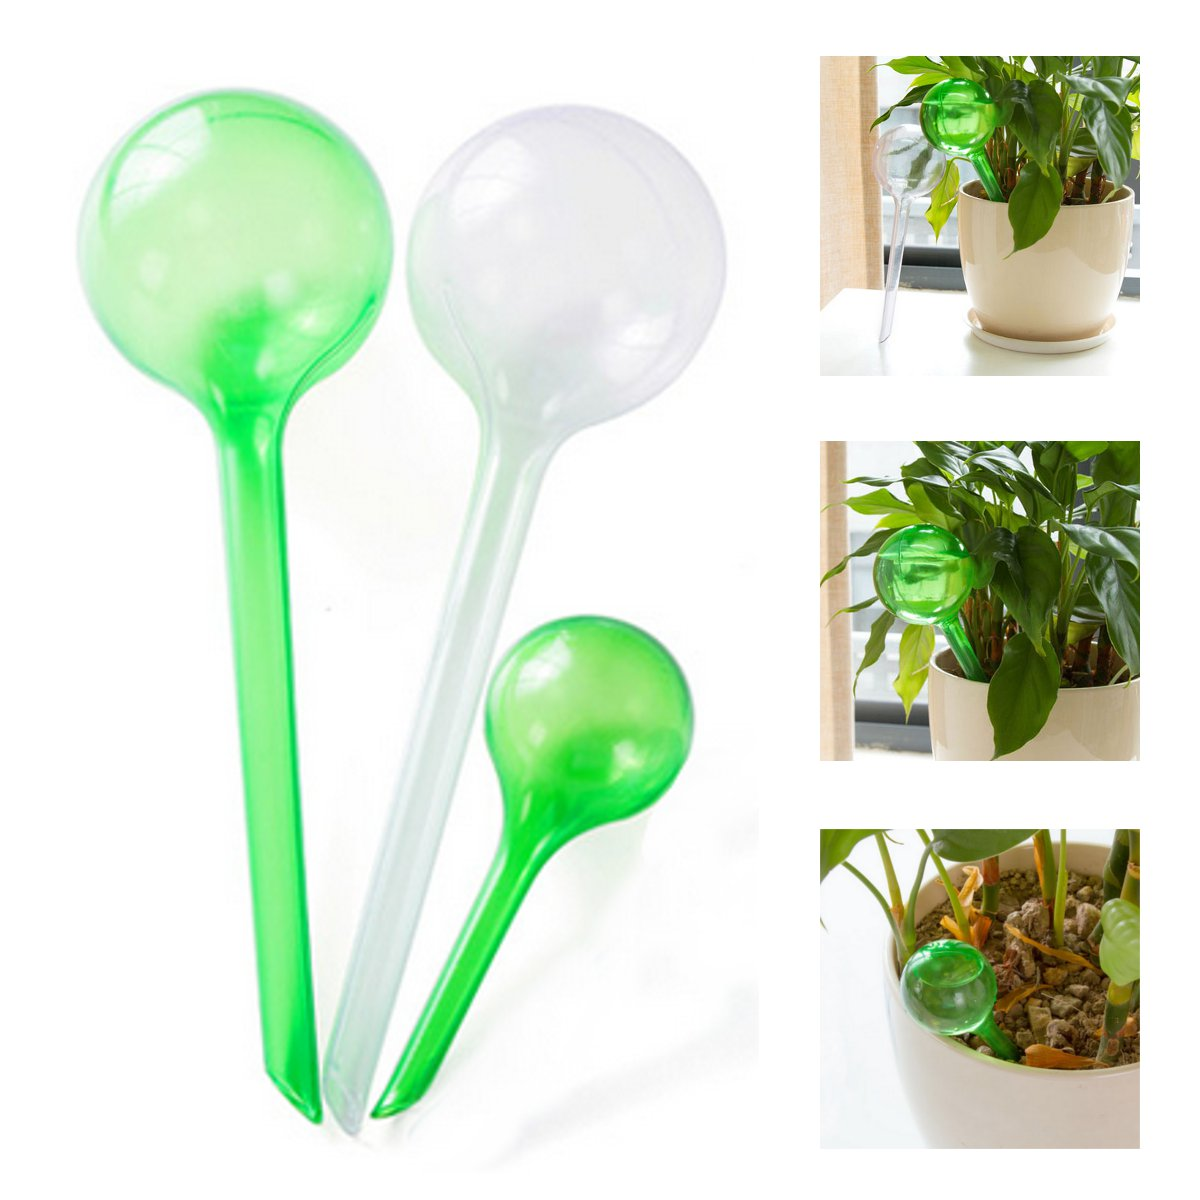 Portable Flower Automatic Watering Device Houseplant Plant Pot Bulb Globe Watering Device Garden House Waterer Water Cans 2 Size image